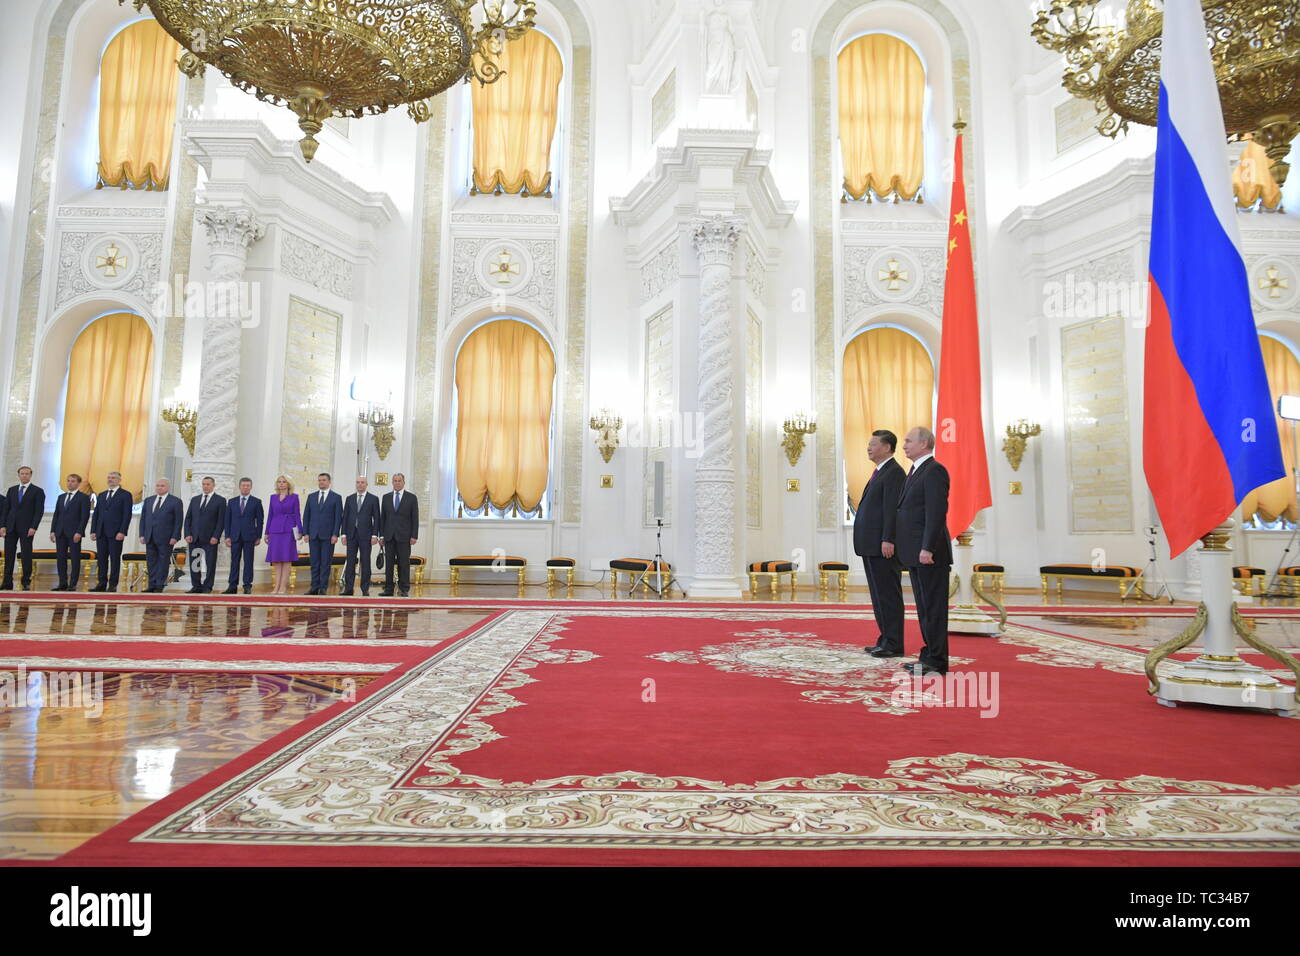 Moscow, Russia. 05th June, 2019. MOSCOW, RUSSIA - JUNE 5, 2019: China's President Xi Jinping (2nd R) and Russia's President Vladimir Putin (R) during a meeting in the Moscow Kremlin; the Chinese leader is on a three-day state visit to Russia. Alexei Druzhinin/Russian Presidential Press and Information Office/TASS Credit: ITAR-TASS News Agency/Alamy Live News - Stock Image